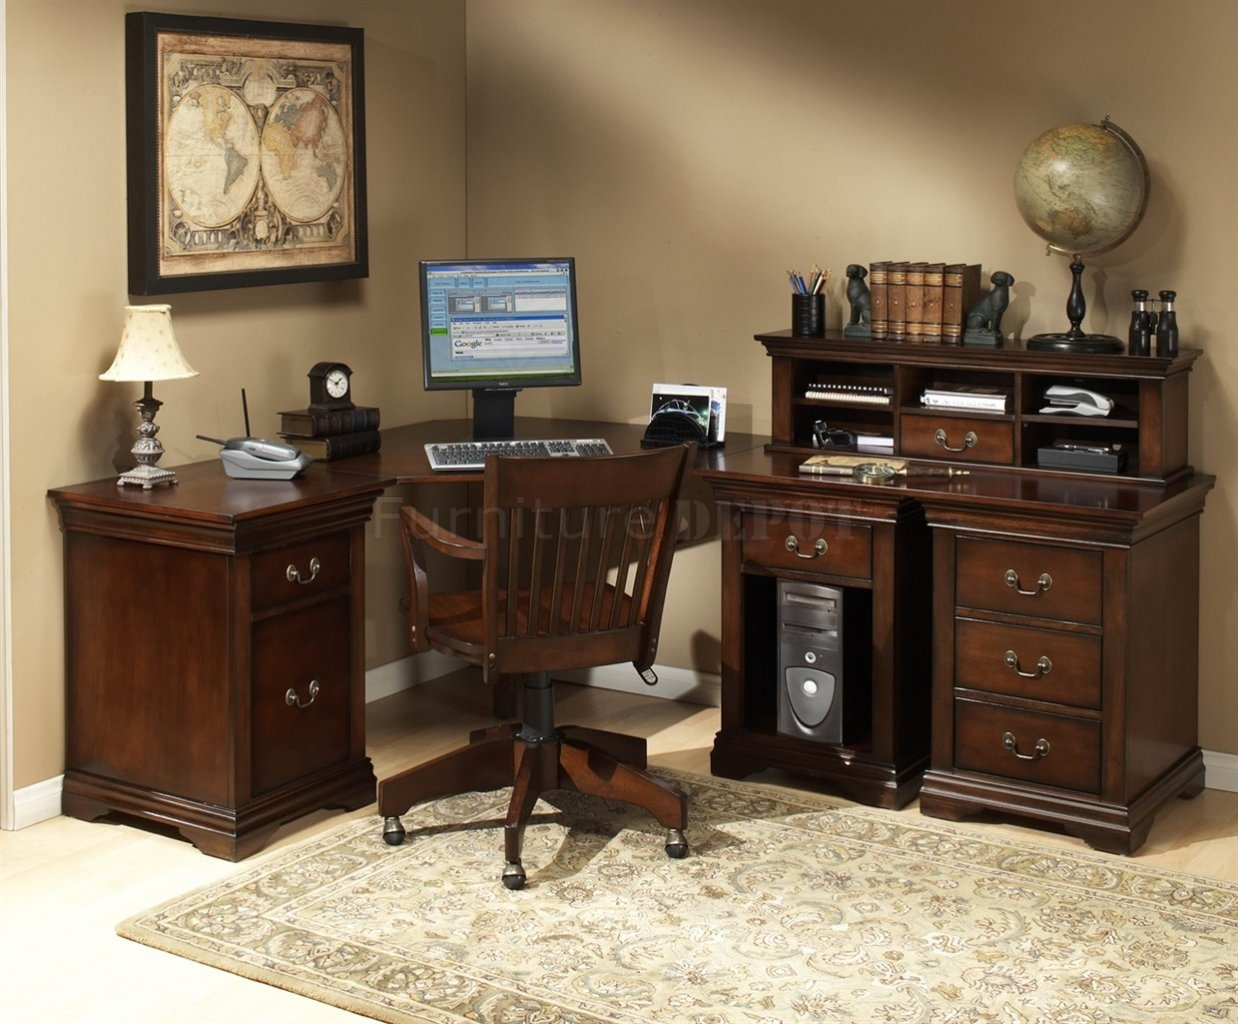 Burnish Cherry Finish L Shaped Desk with hutch and drawer plus computer set and wooden armchair on an office home room with tan wall and cream floor plus carpet